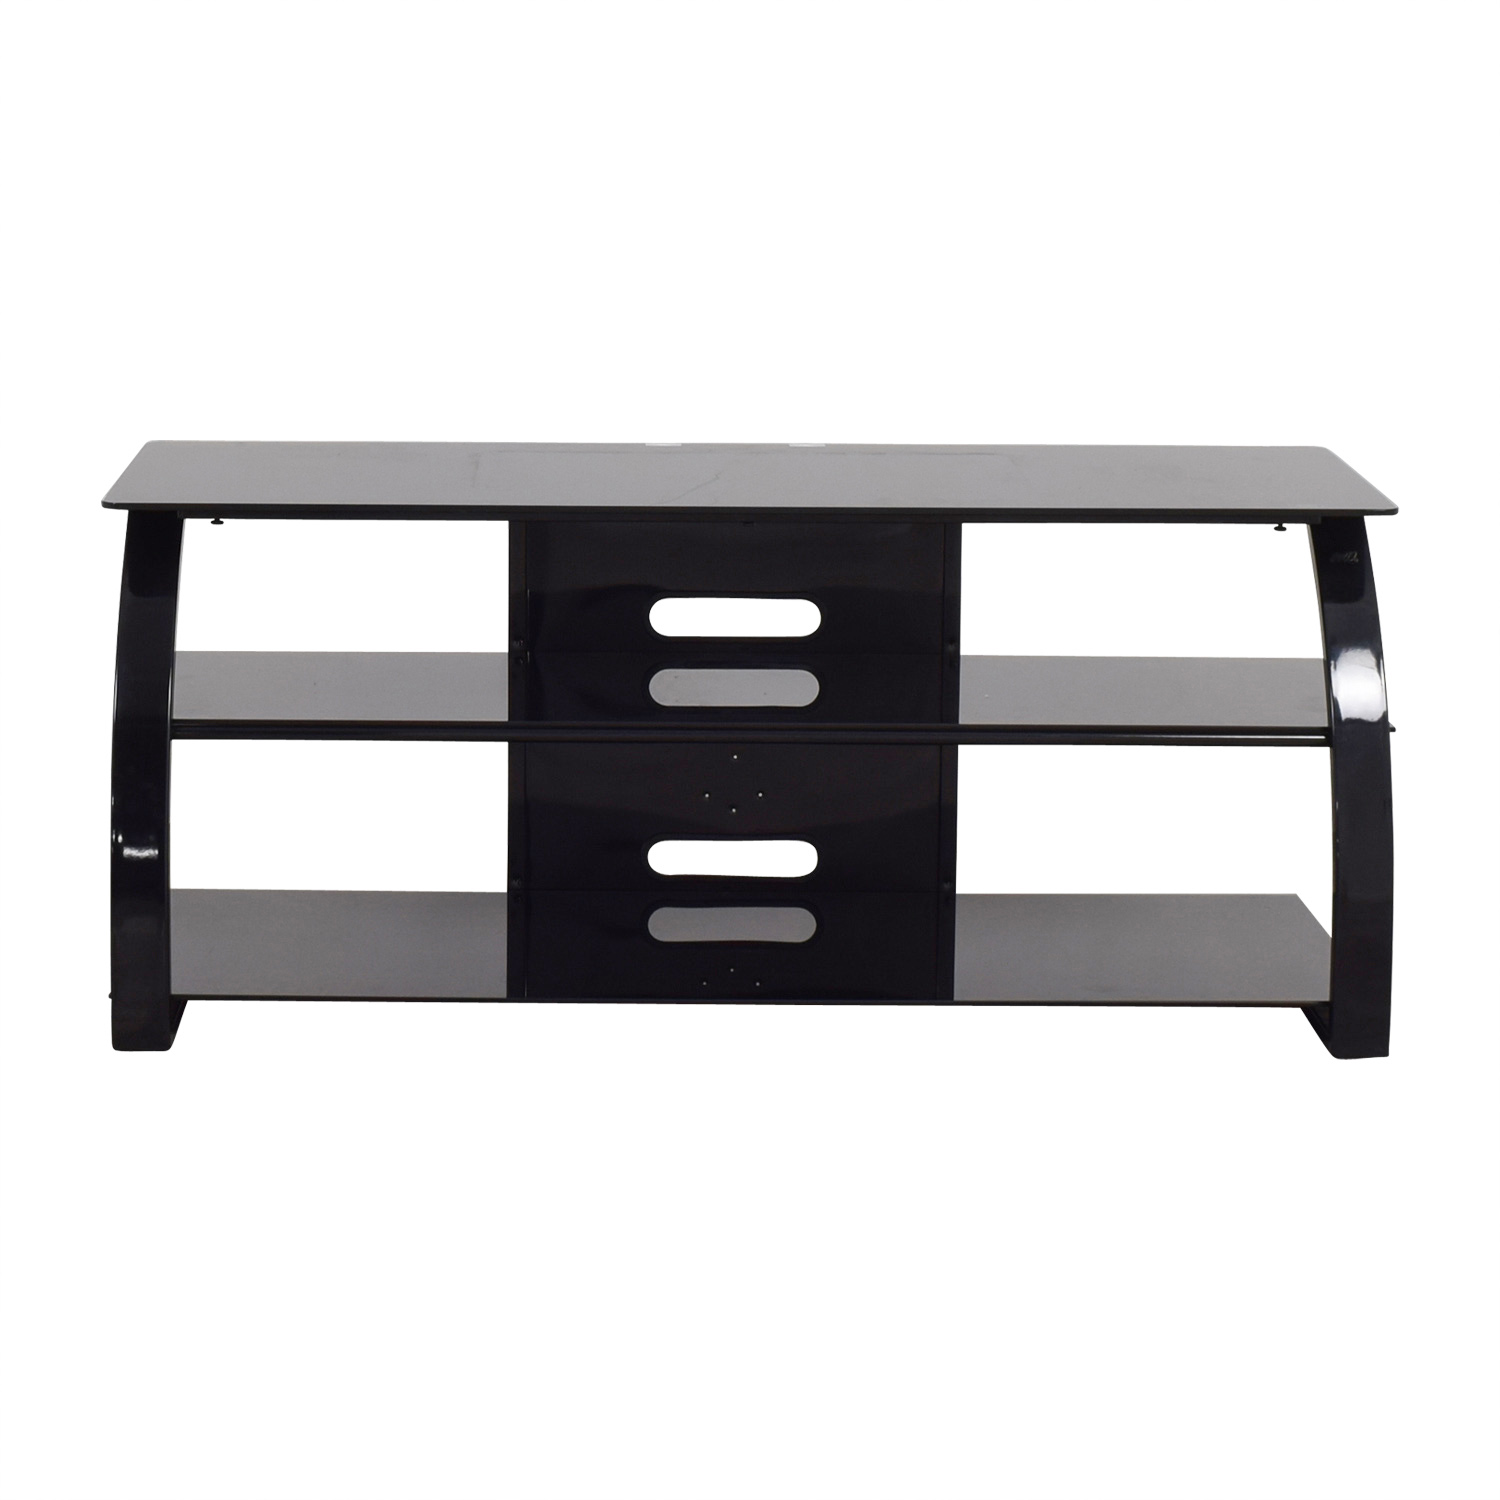 shop Bello Bello TV Stand online